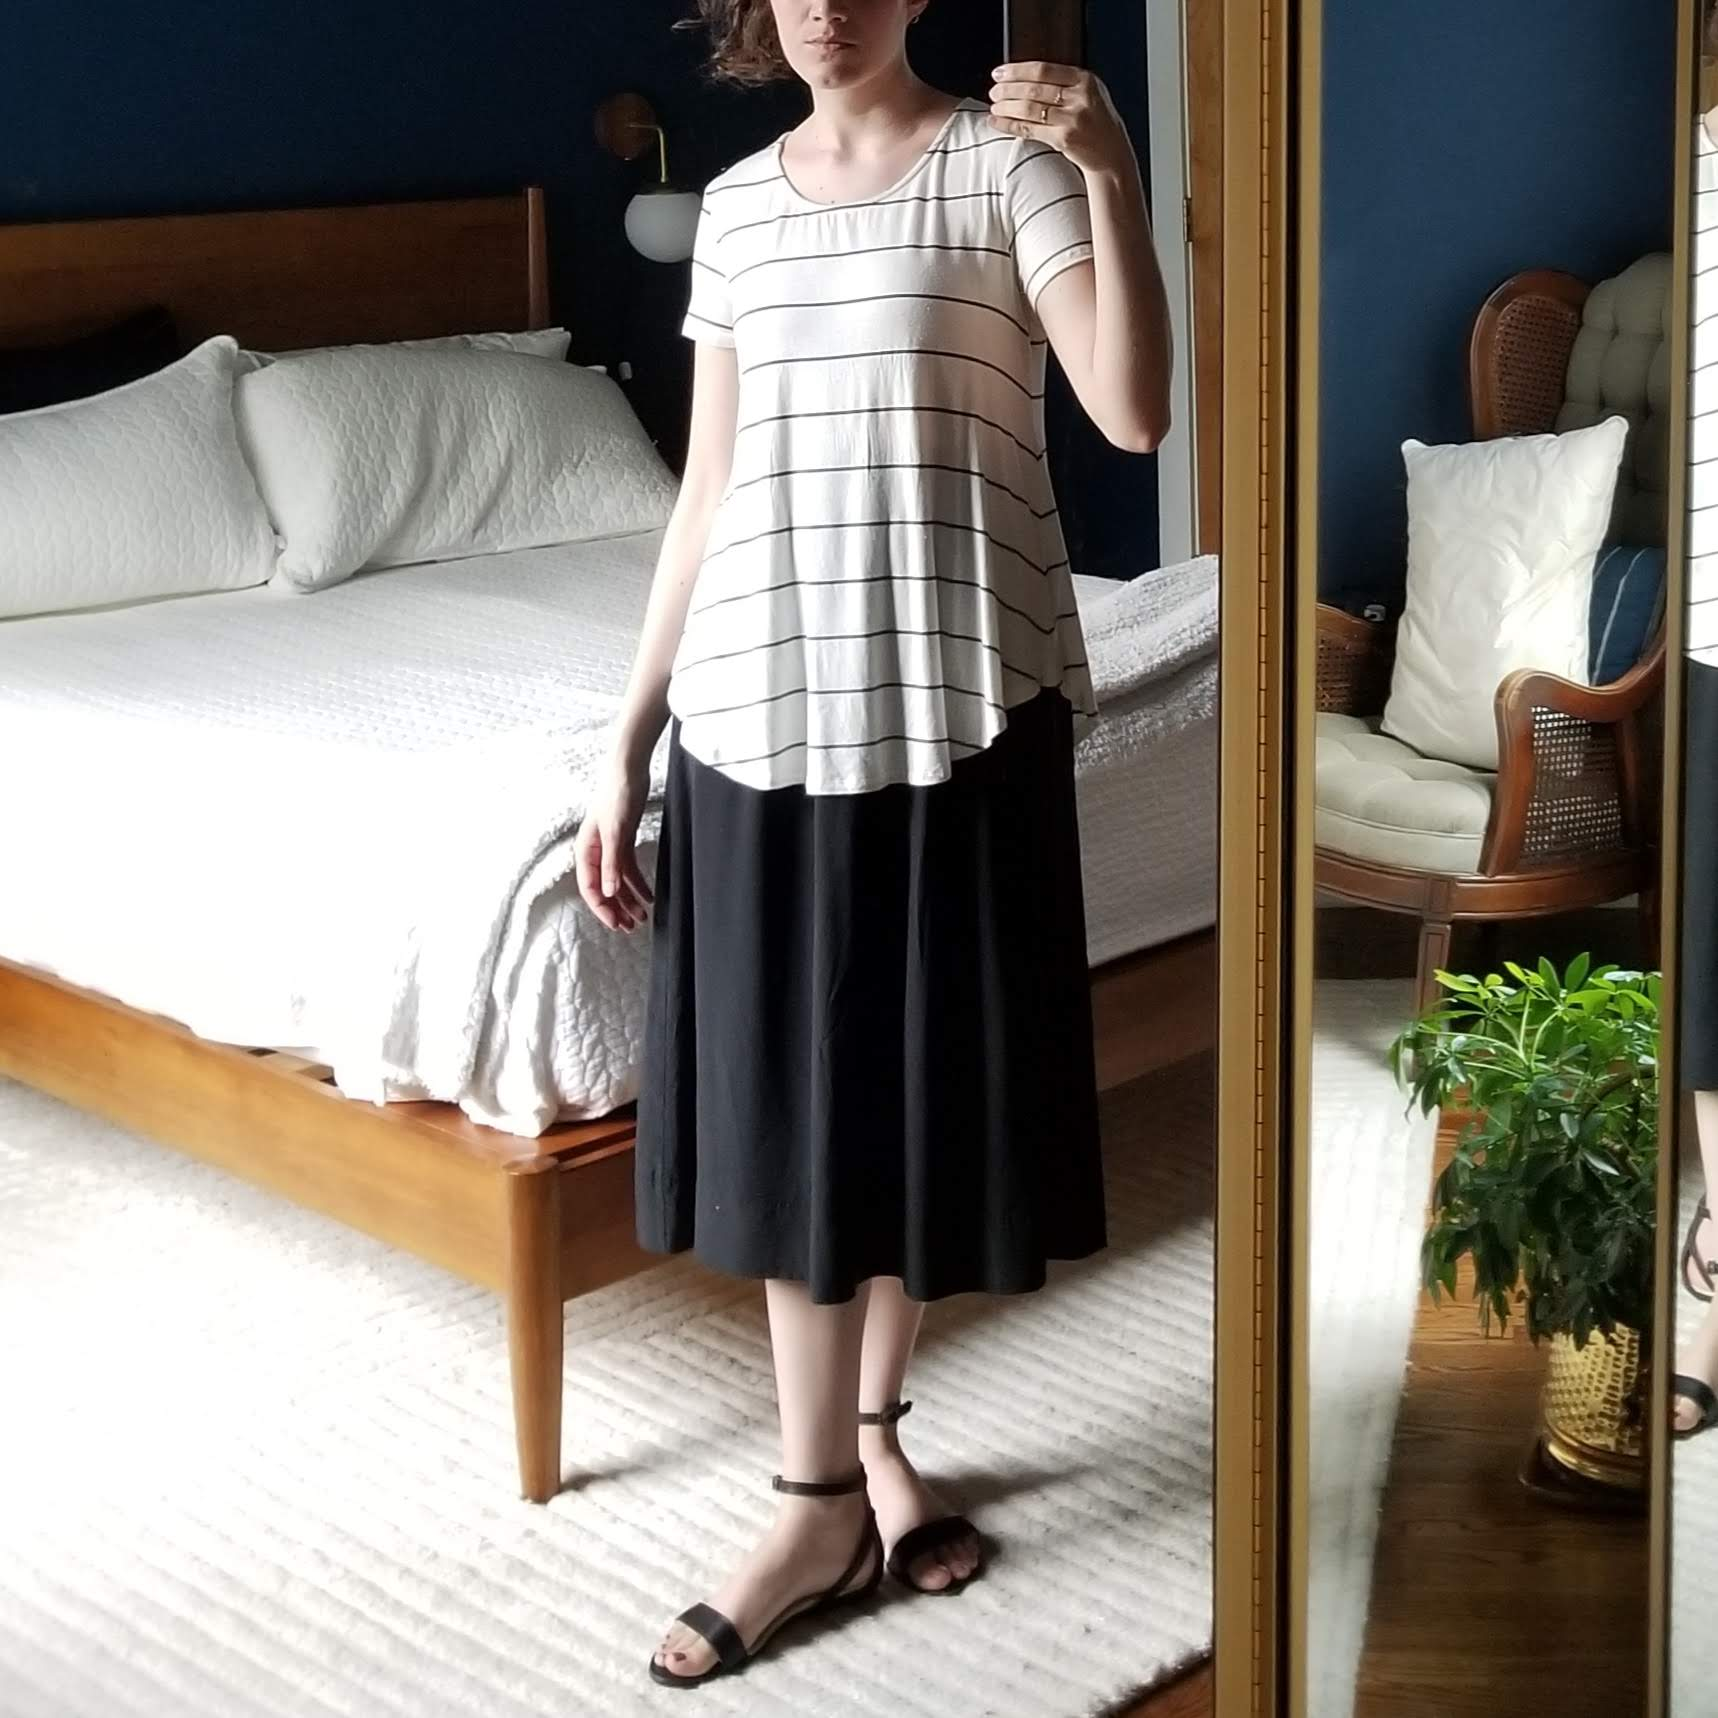 Tuesday - June 5, 2018I was THRILLED with how this turned out. Building on my neo-lagenlooks from a couple weeks ago (Friday, May 11, 2018), I paired the Elizabeth Suzann bel skirt yet again with a new drapey top layer and got this. I wore this shirt and skirt combo previously, but now it has an entirely different look.